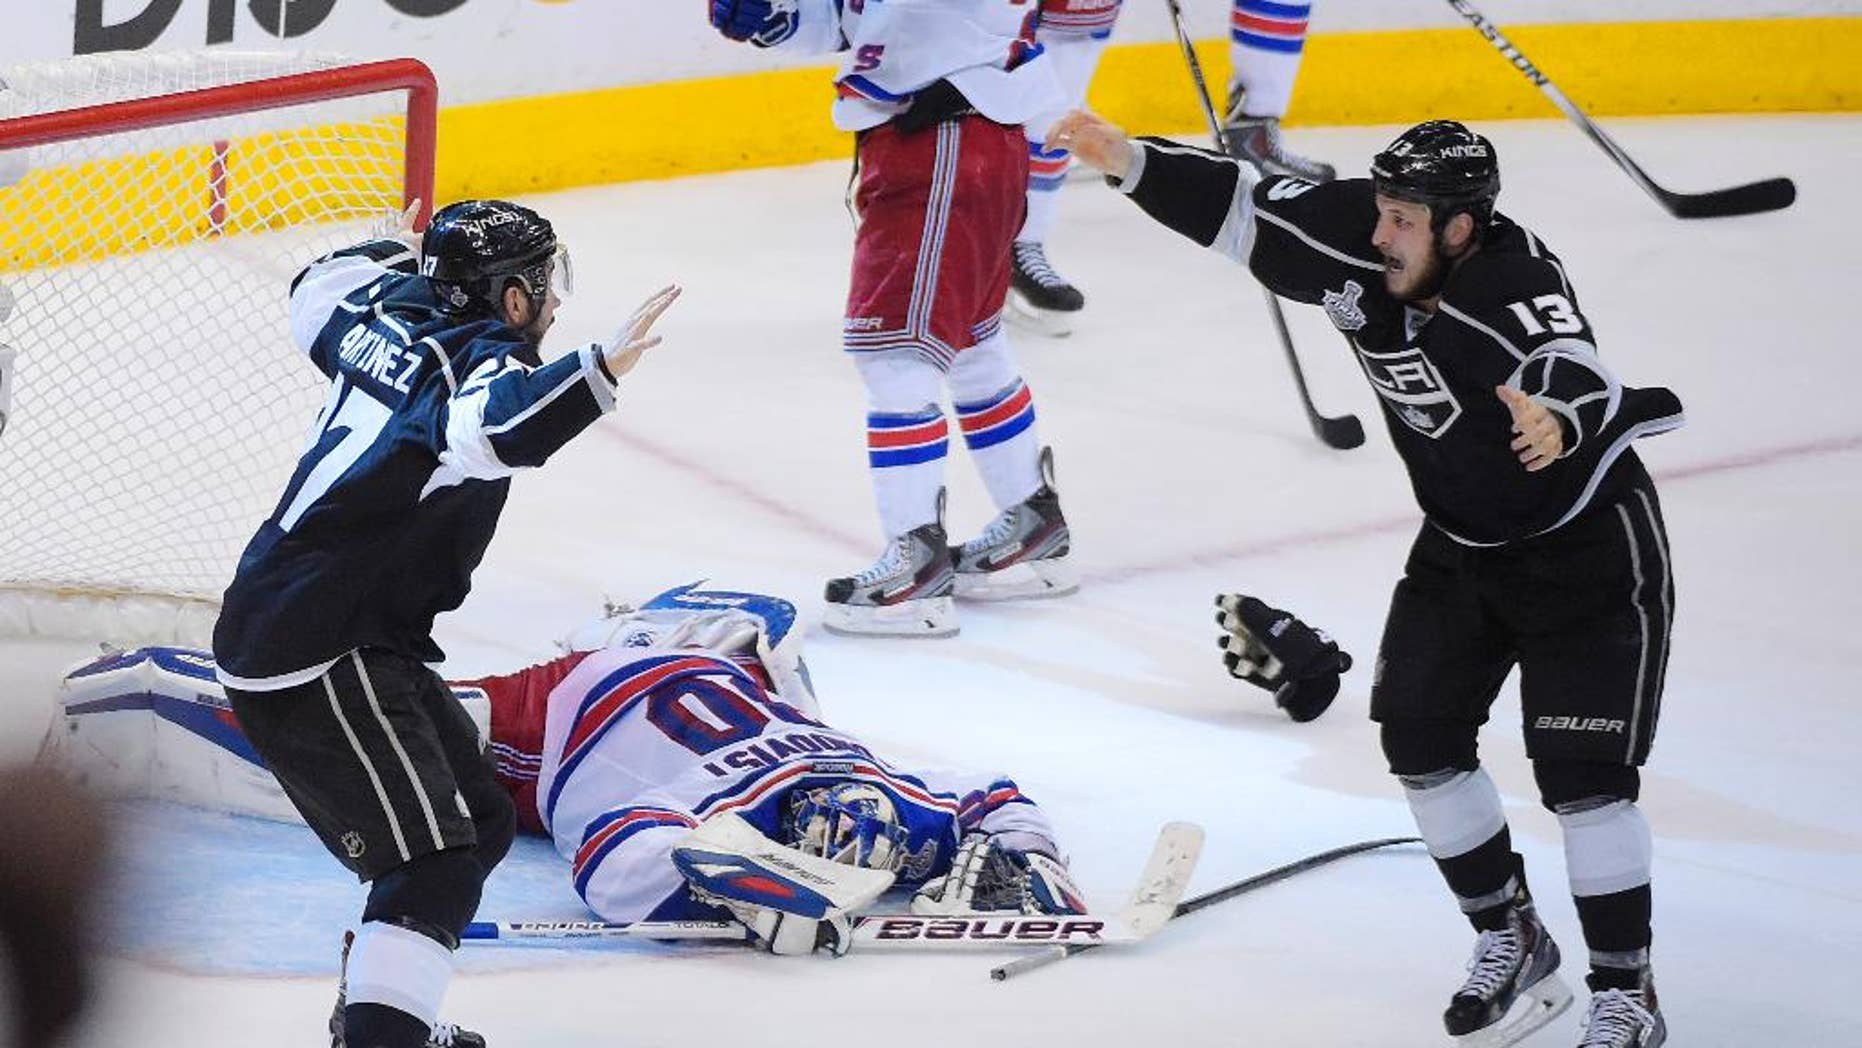 Los Angeles Kings defenseman Alec Martinez, left, celebrates after scoring the winning goal with Kyle Clifford, right, past New York Rangers goalie Henrik Lundqvist, of Sweden, during the second overtime period in Game 5 of an NHL hockey Stanley Cup finals, Friday, June 13, 2014, in Los Angeles.  (AP Photo/Mark J. Terrill)